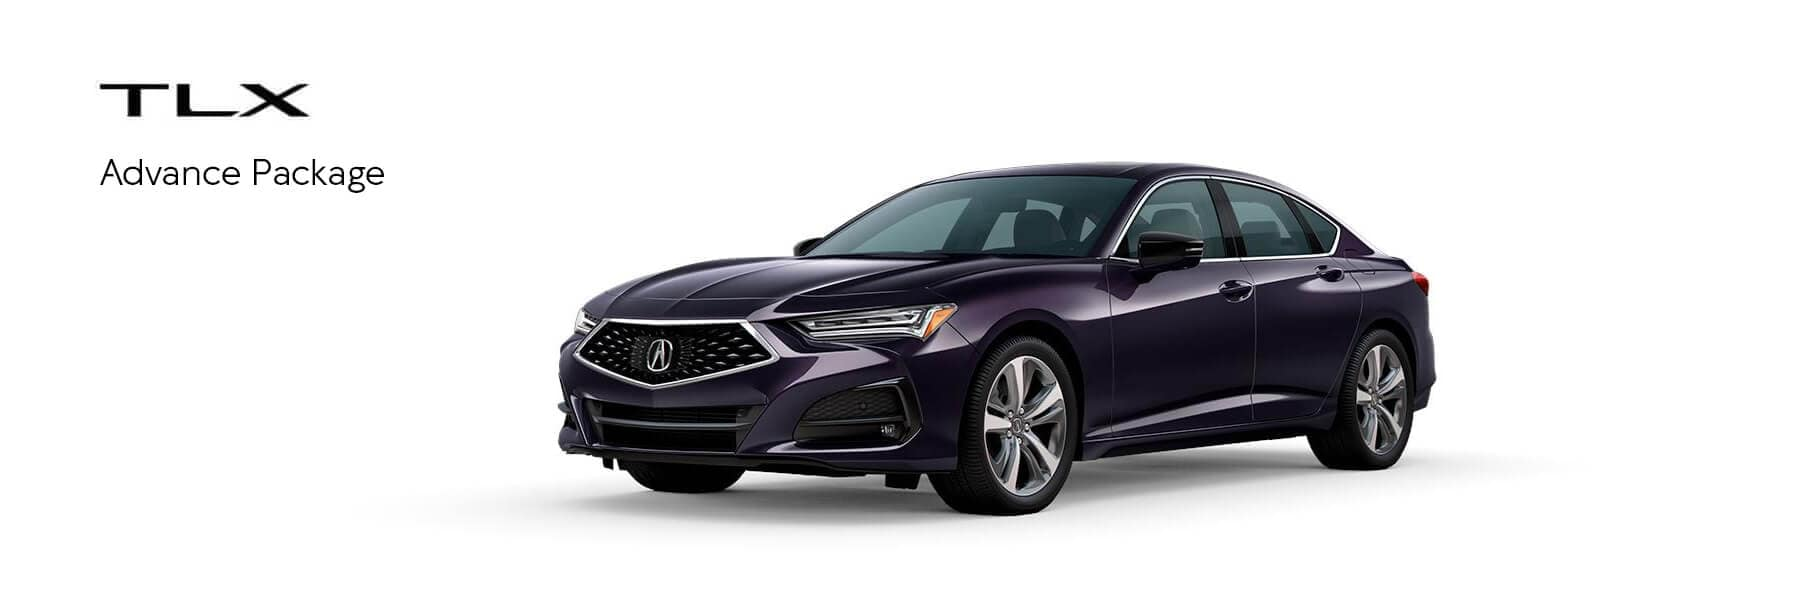 Acura TLX Advance Package